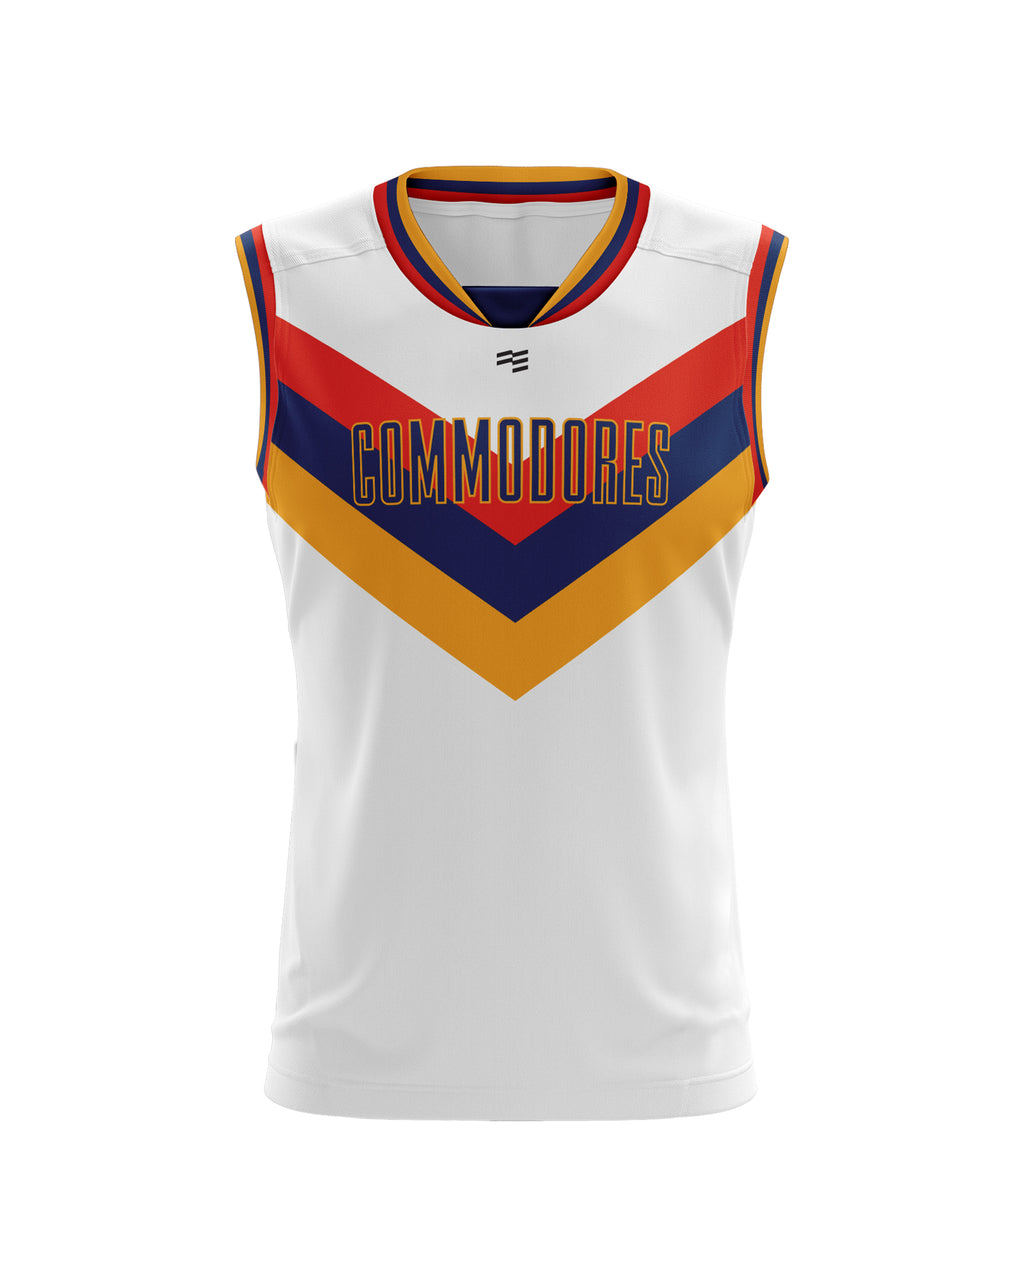 Commodores Aussie Rules Guernsey - Mens